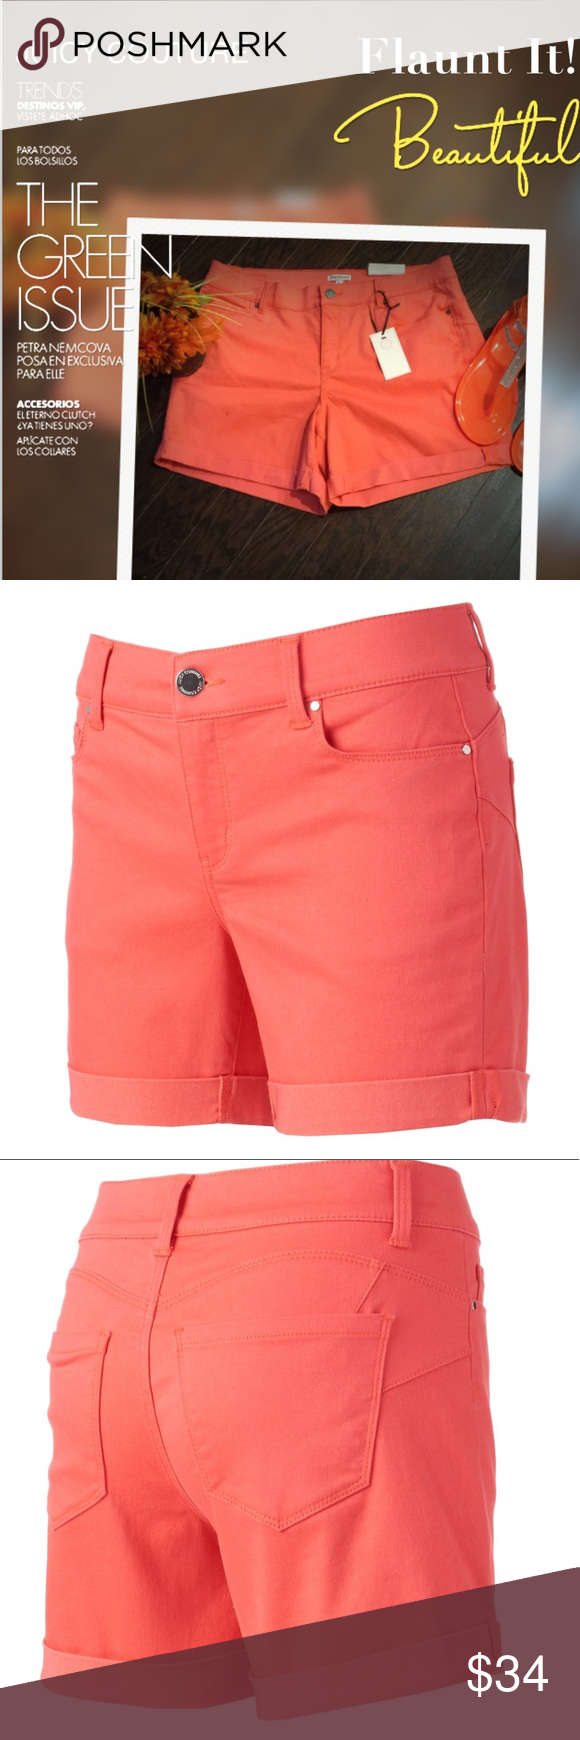 ddd3c6da7ac547 Women s JUICY COUTURE Cuffed Hem Shorts Wear your style with confidence in  these women s shorts from Juicy Couture. Enhanced yoke and darts complement  and ...